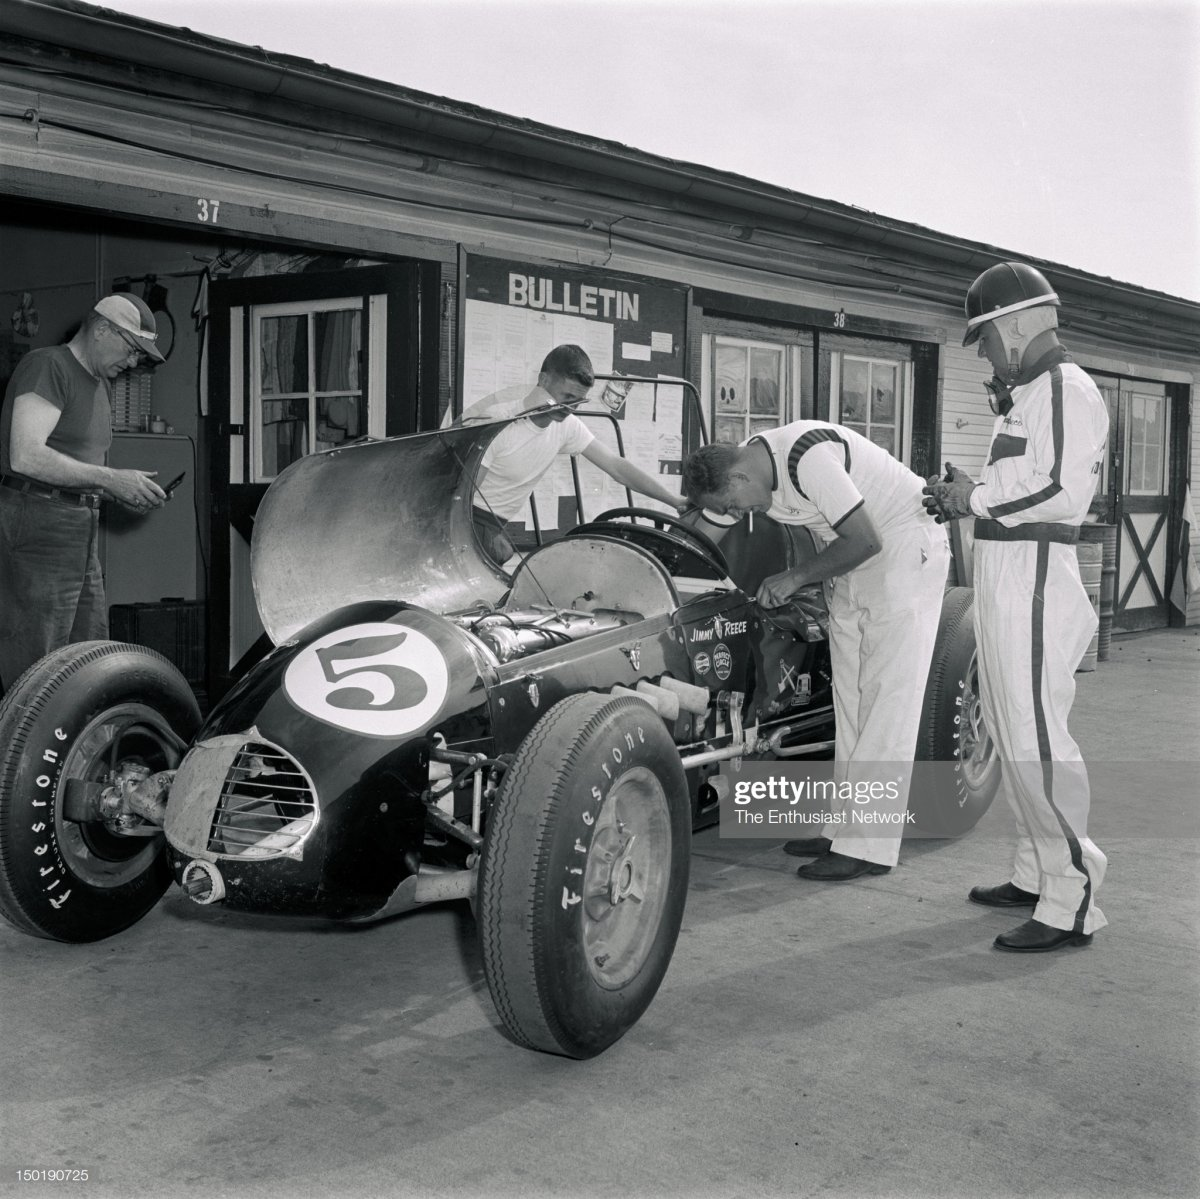 36  1955 - 39th International 500-Mile Sweepstakes. Indianapolis.jpg